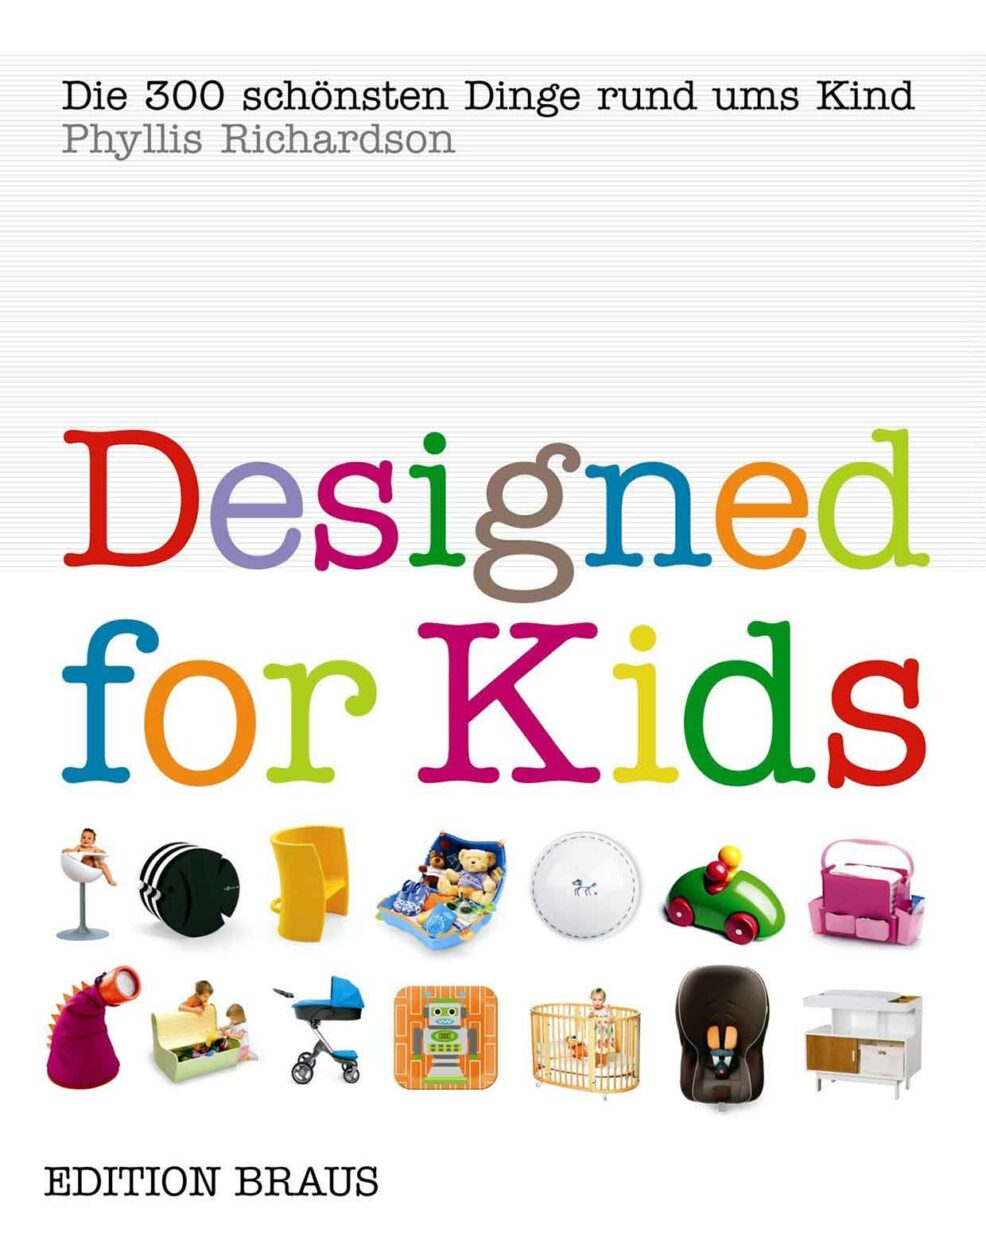 designed-for-kids-edition-braus-cover